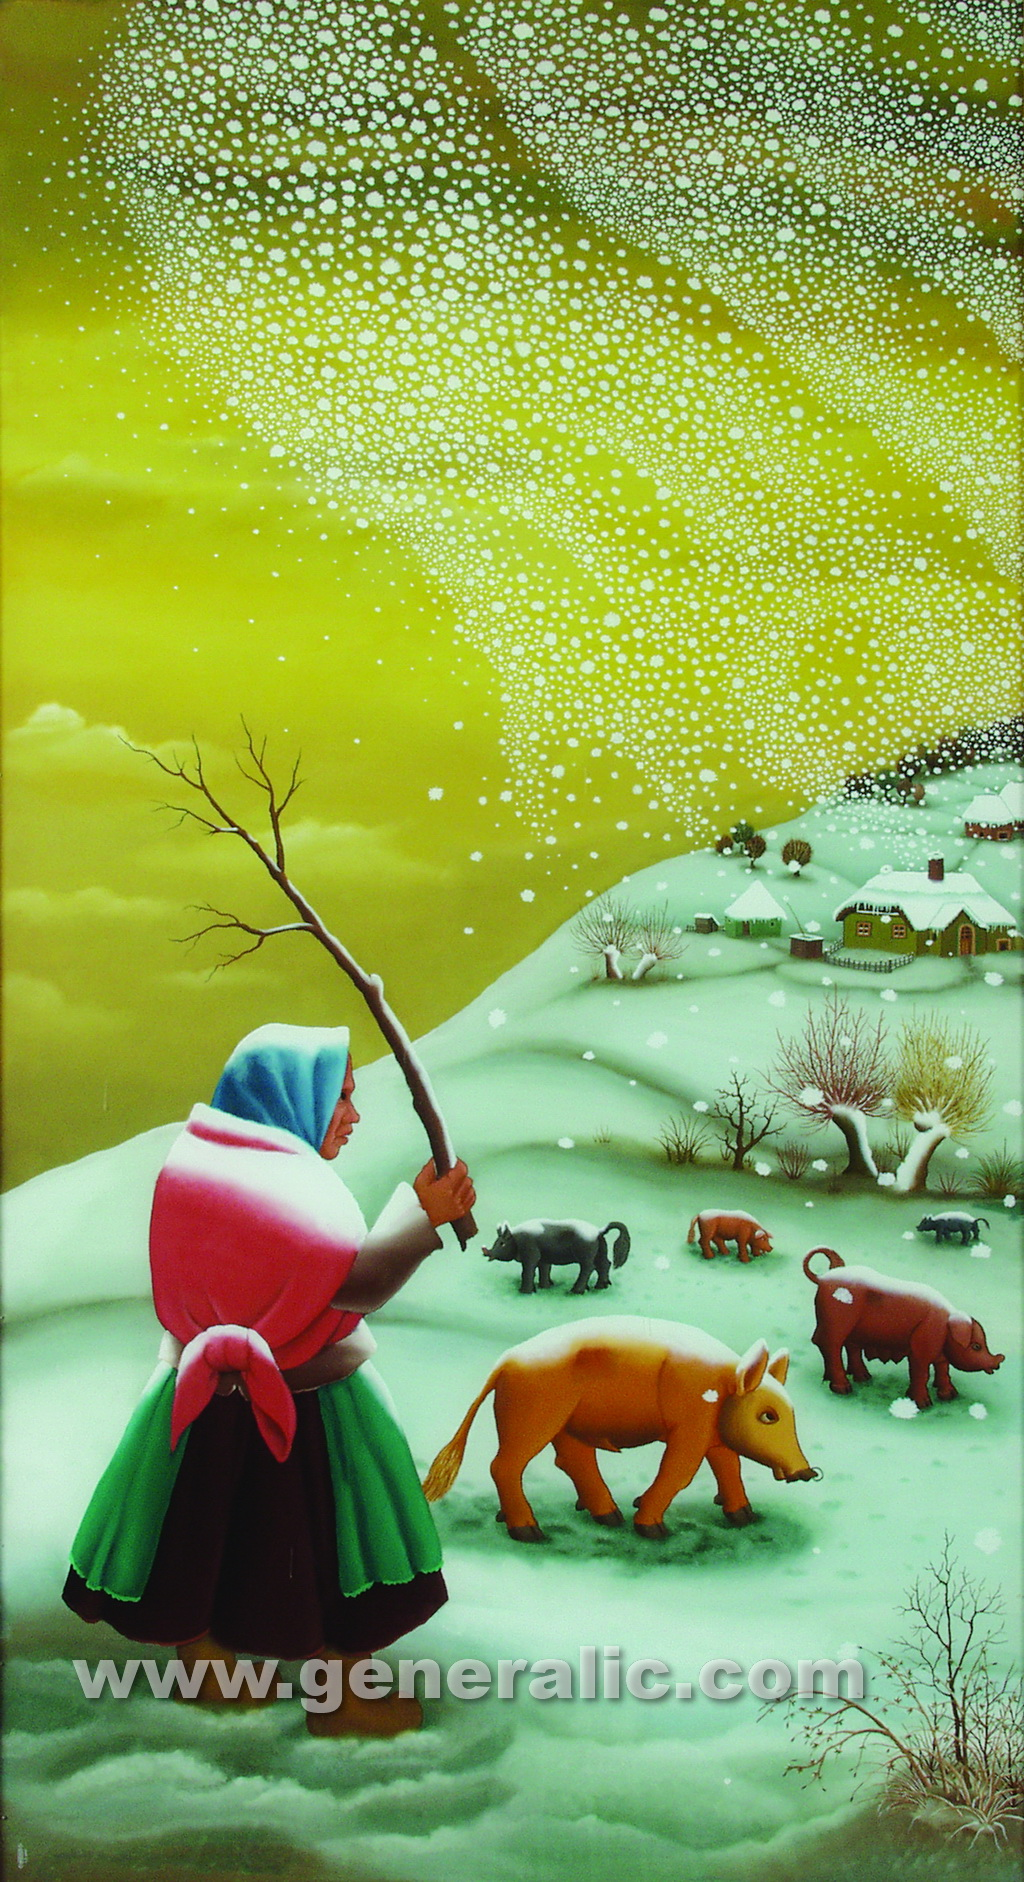 Ivan Generalic, 1973, The first snow - triptych 1, oil on glass